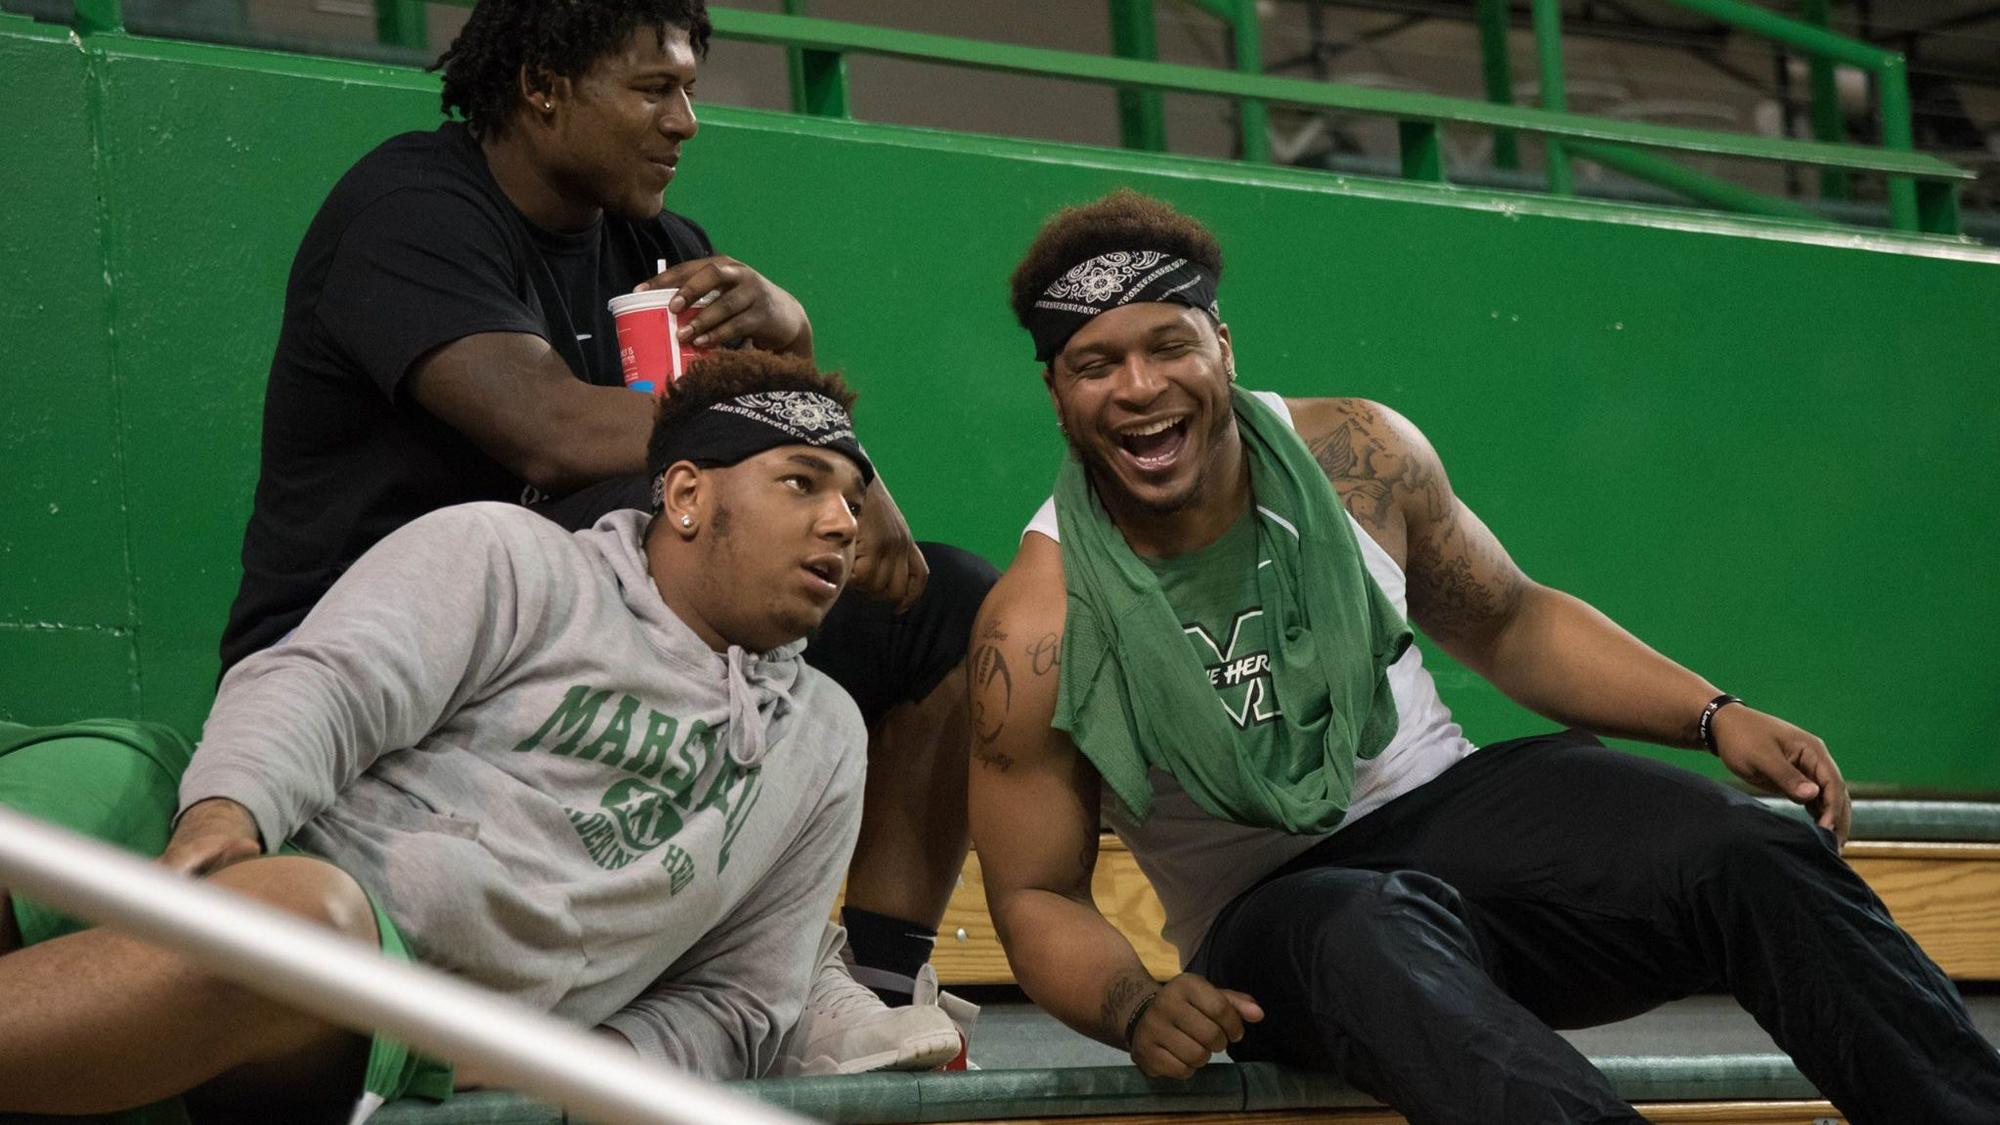 Larry Aaron III with friends at Marshall